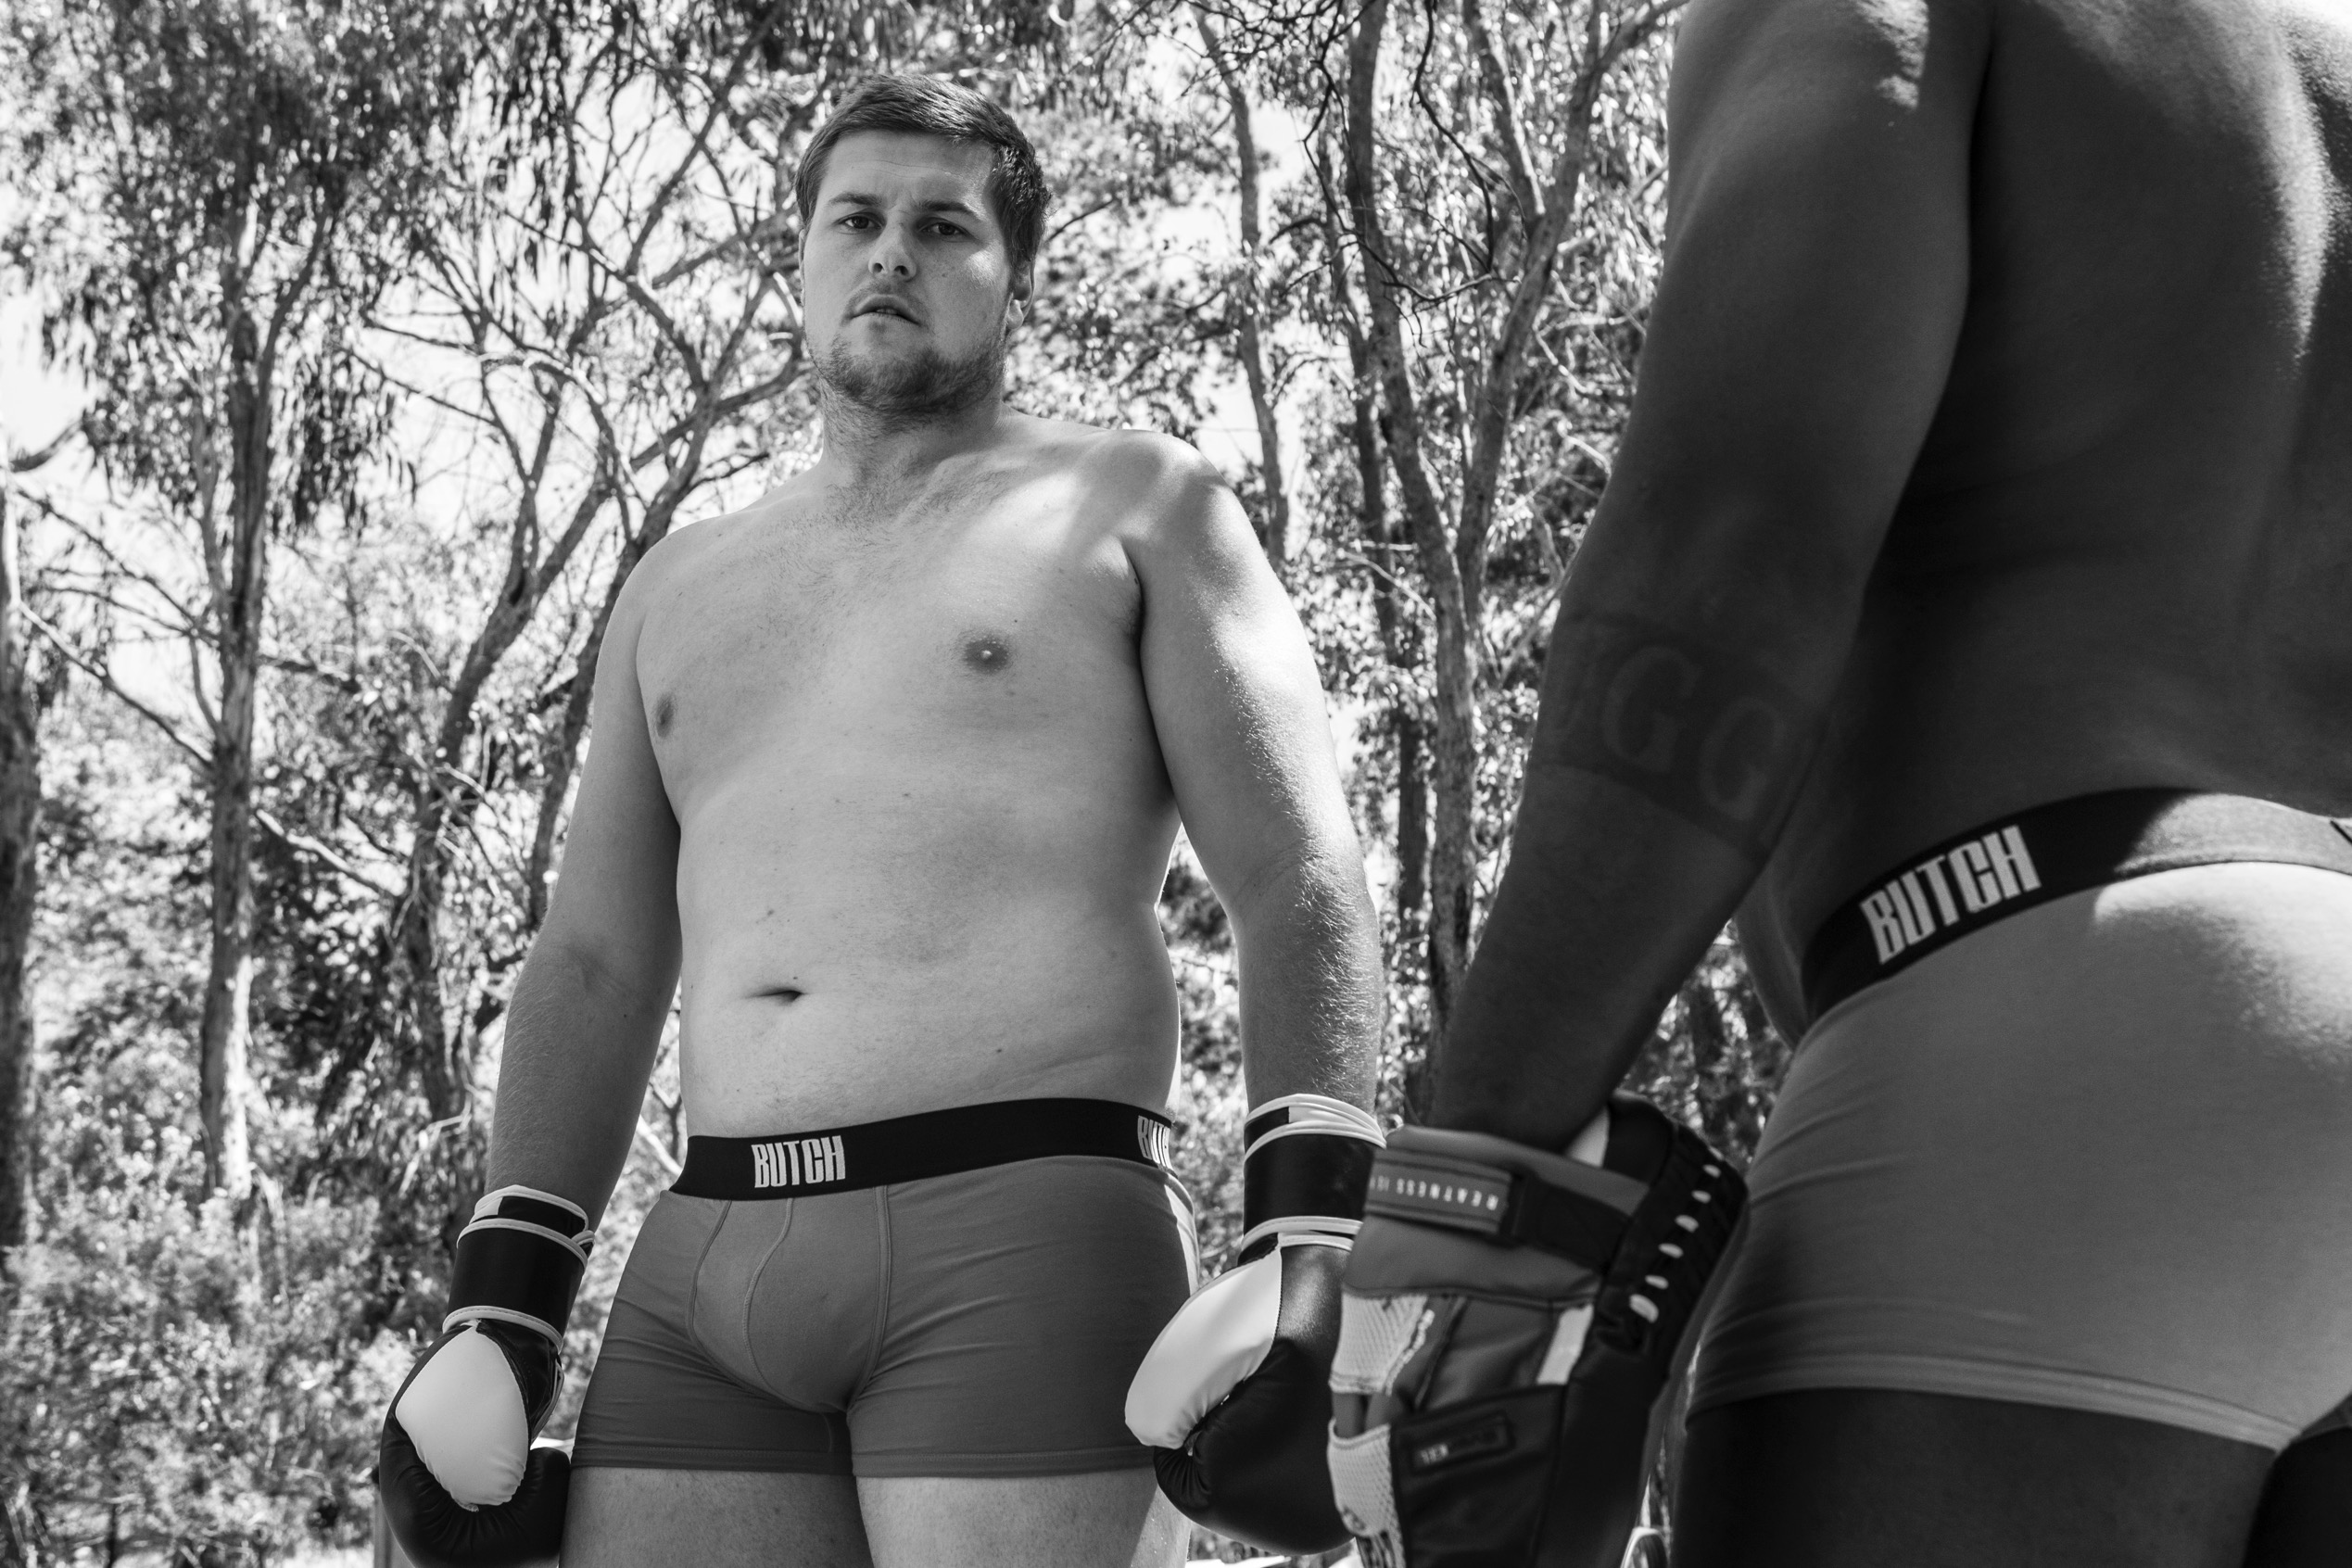 Review - Butch Bear Knuckle Boxer Brief